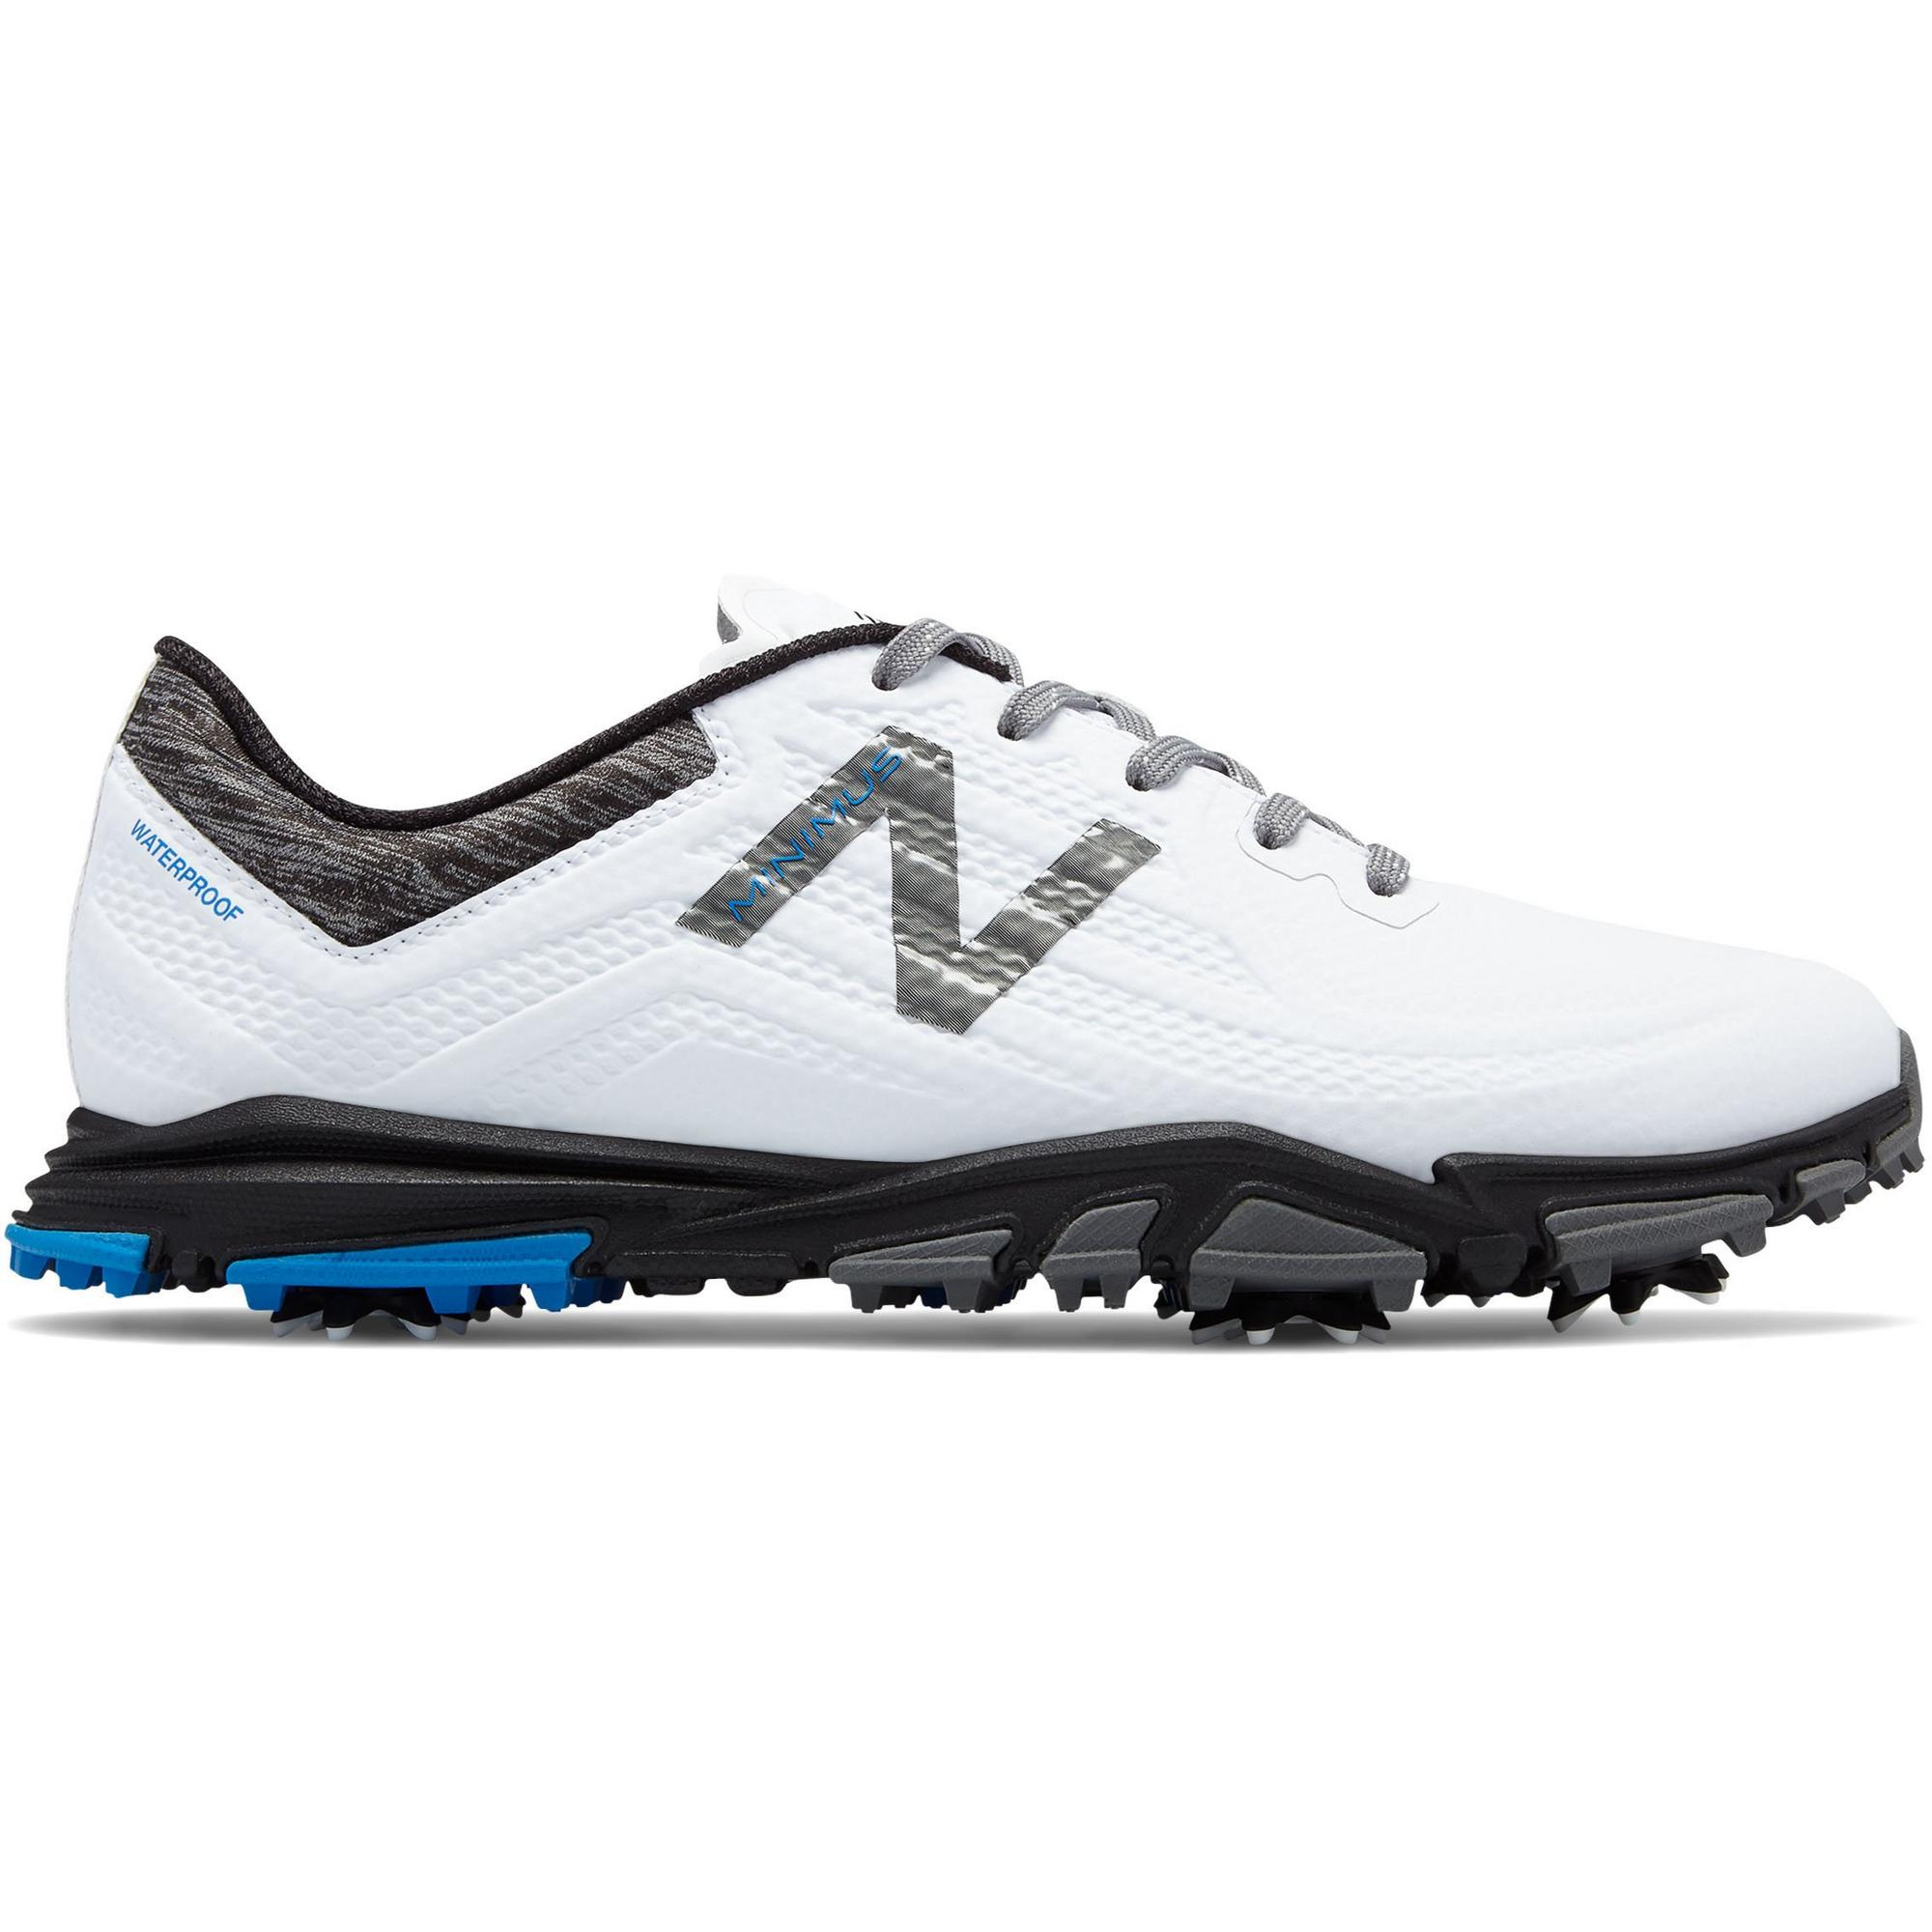 Men's Minimus Tour Spiked Golf Shoe - White/Black